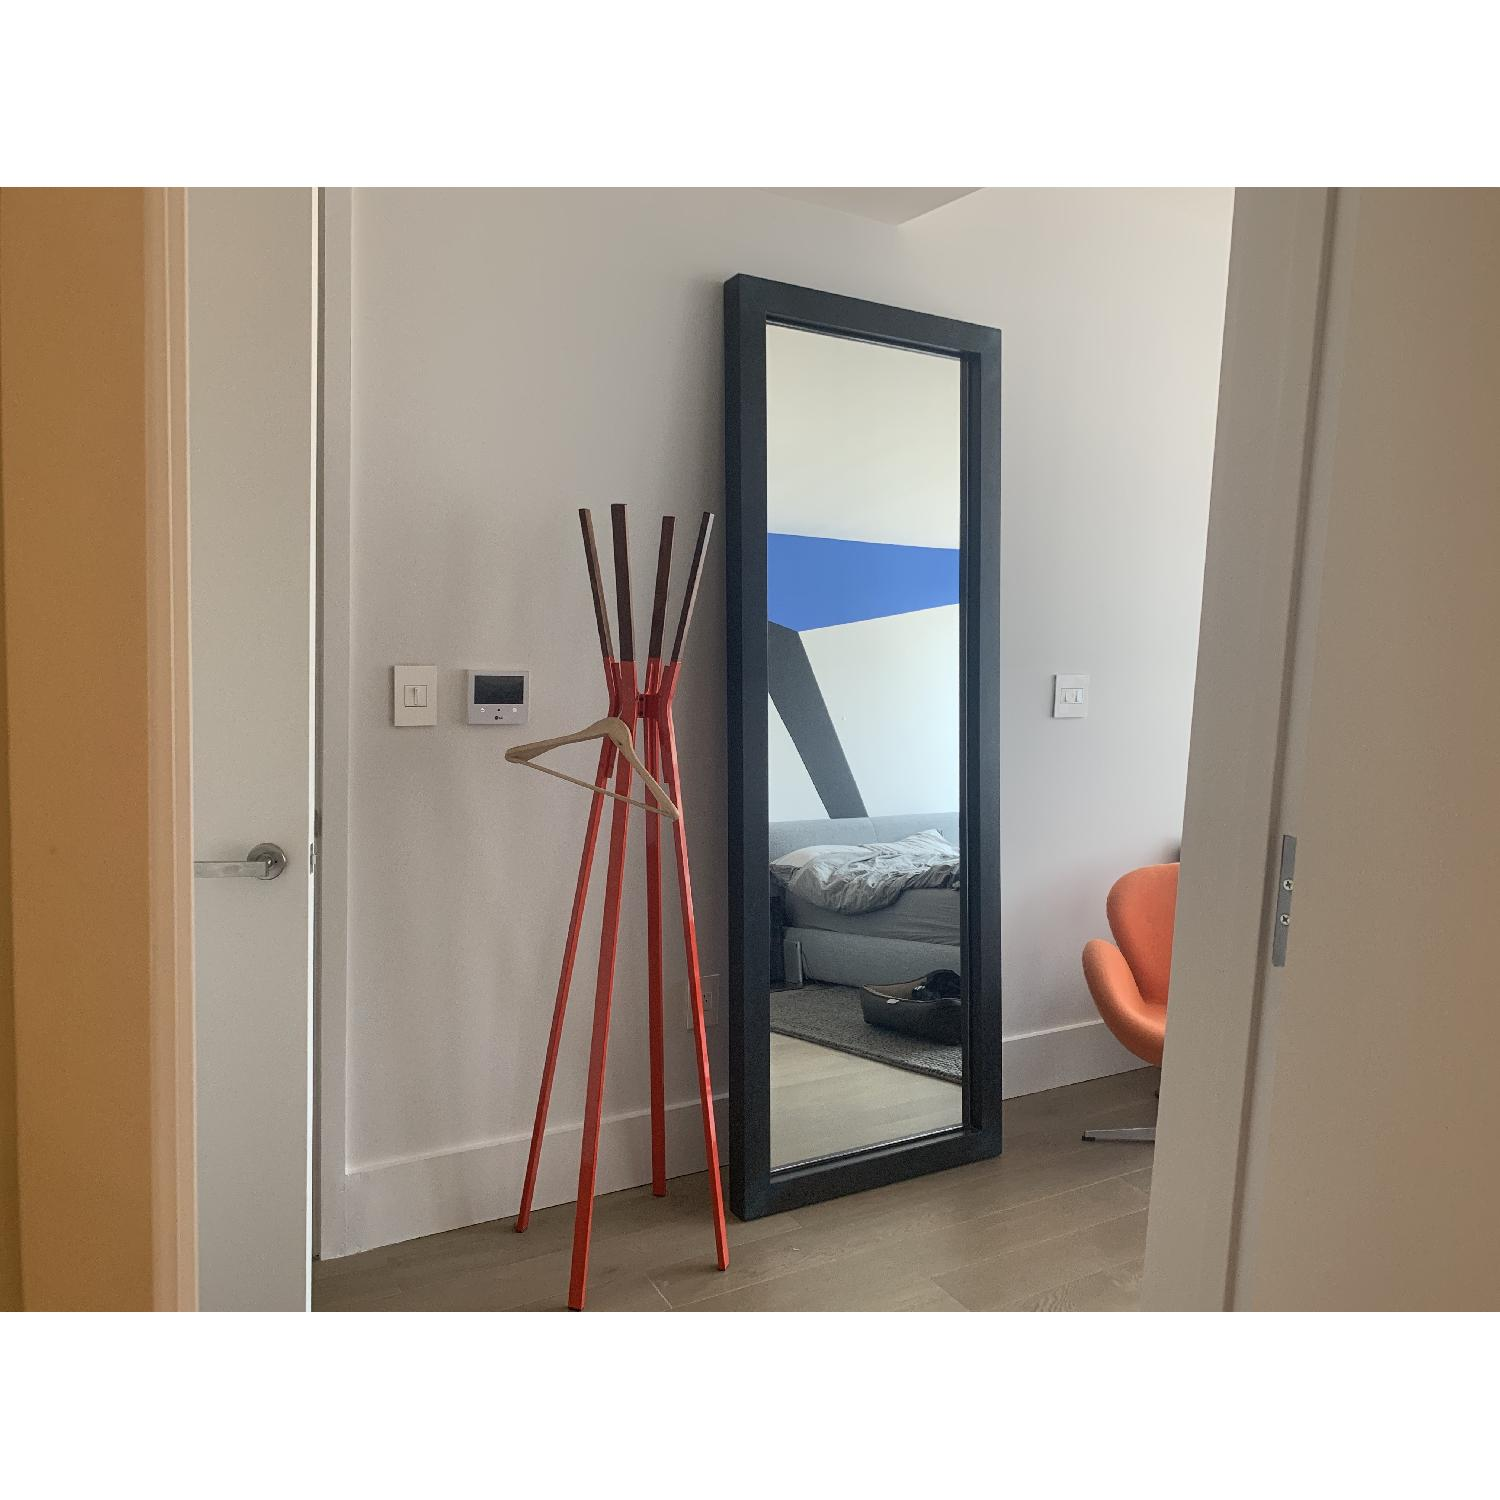 Room & Board Industry Leaning Mirror in Natural Steel - image-2